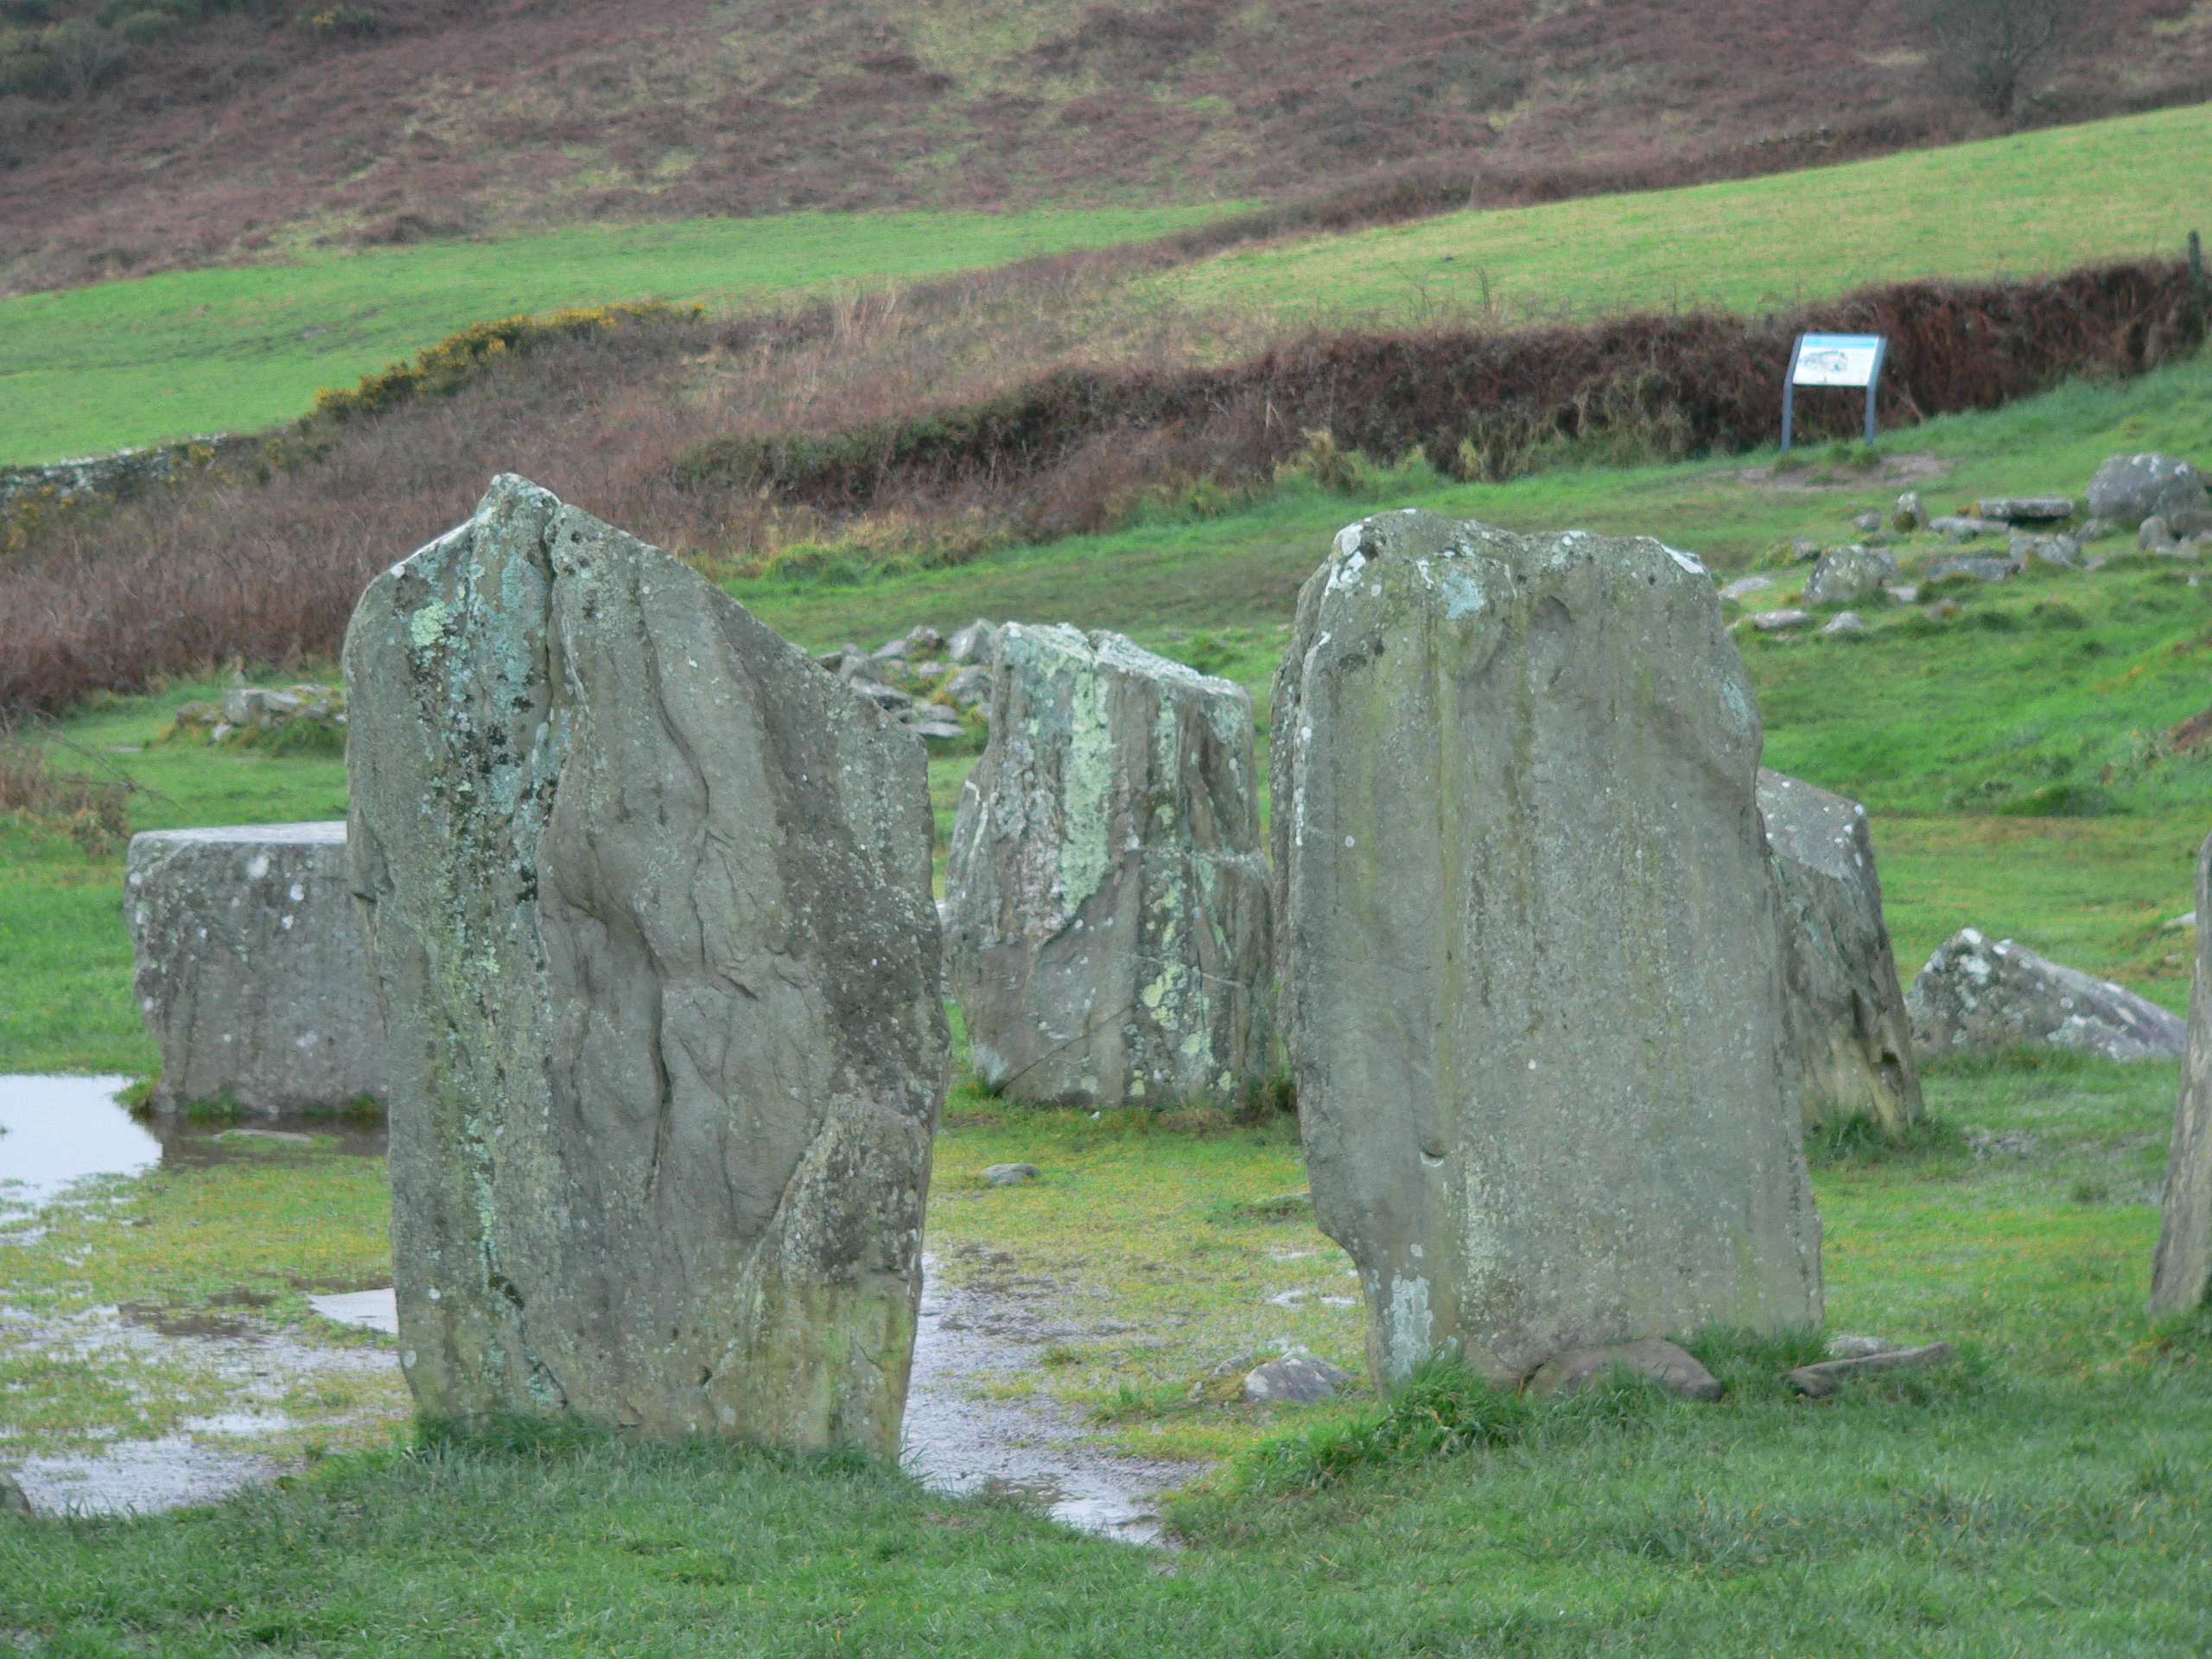 Entrance stones to Drombeg Stone Circle